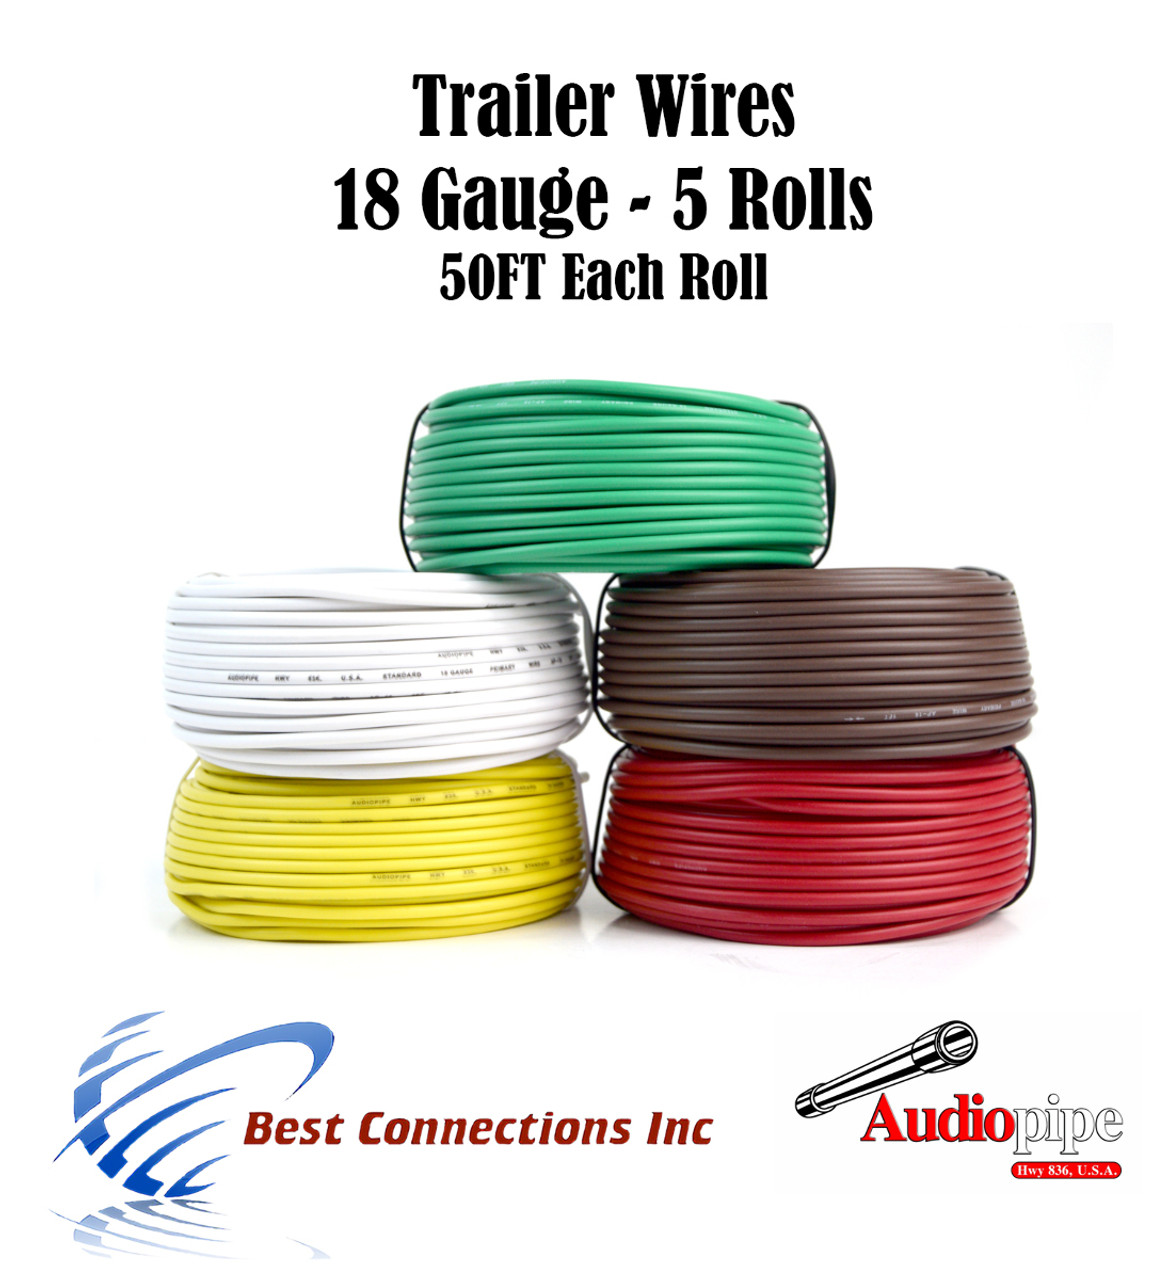 medium resolution of 5 way trailer wire light cable for harness led 50ft each roll 18 gauge 5 colors